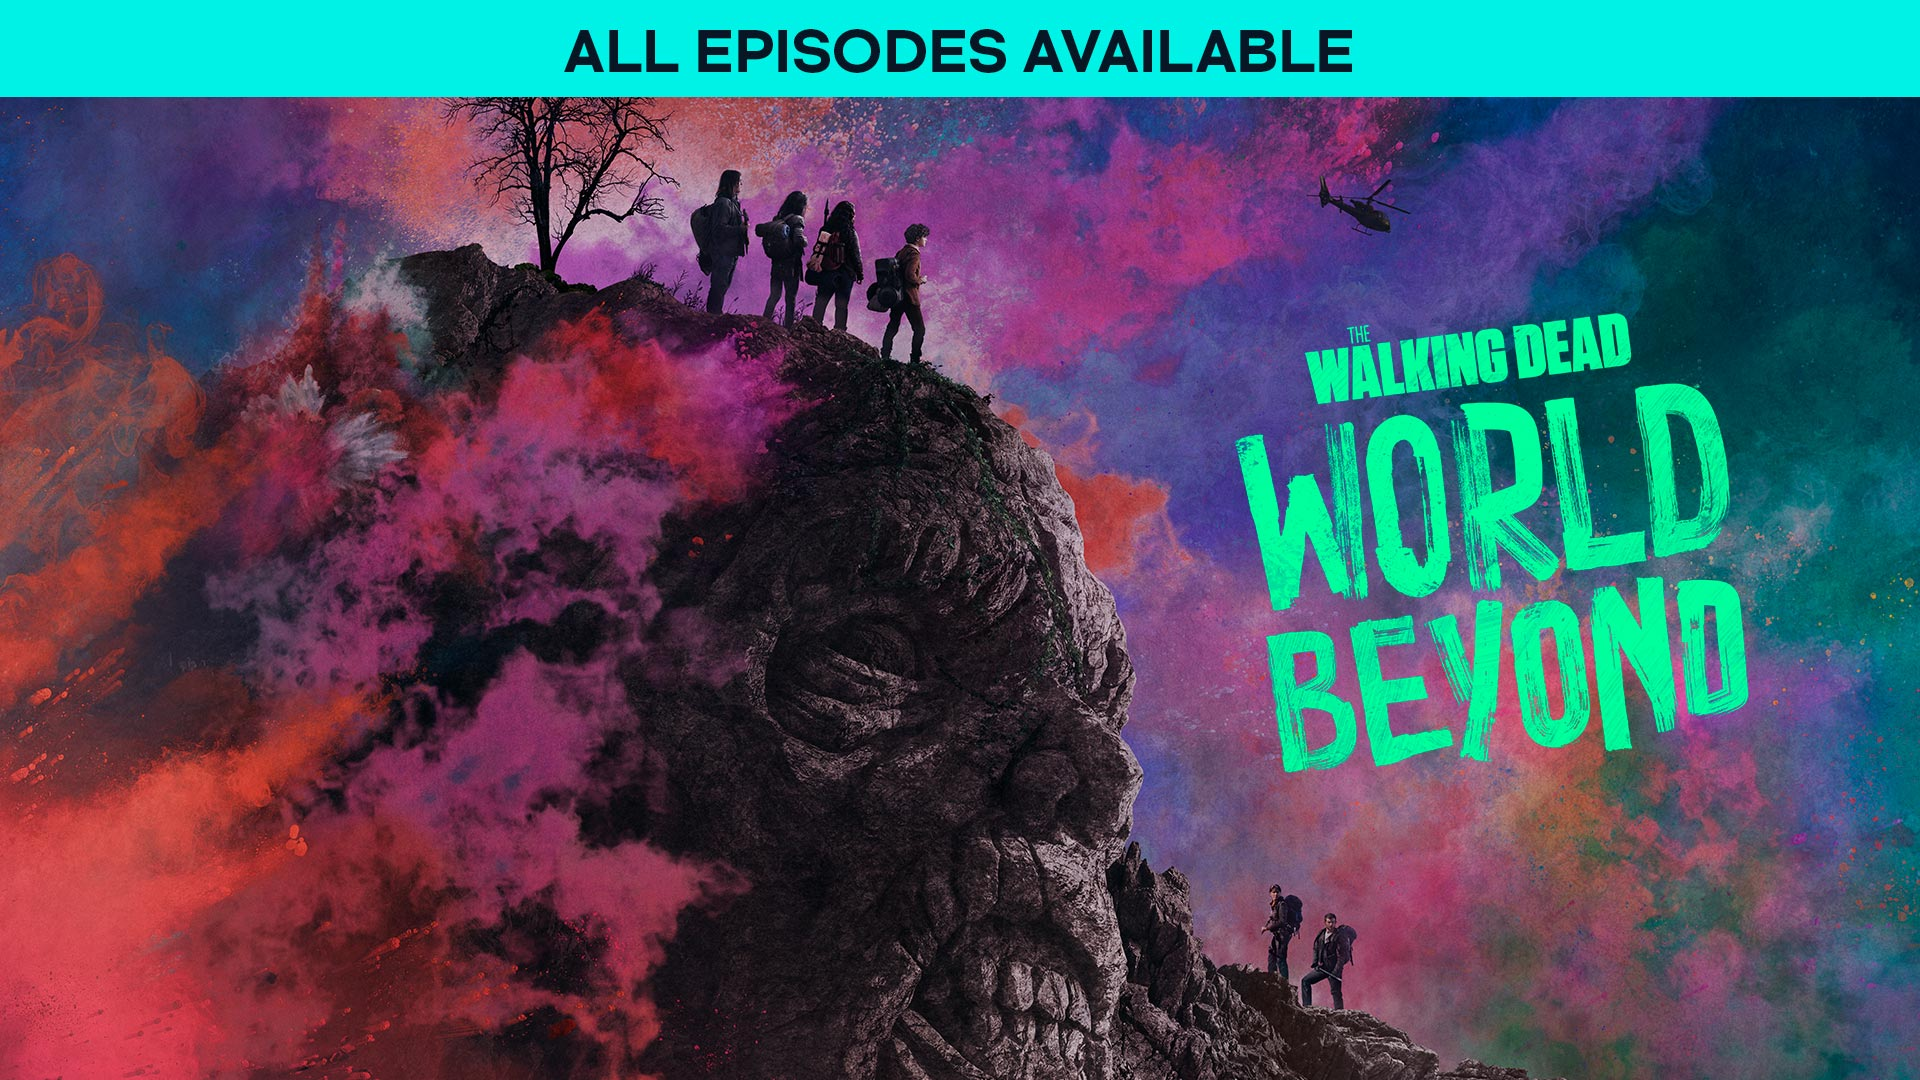 The Walking Dead: World Beyond, Season 1